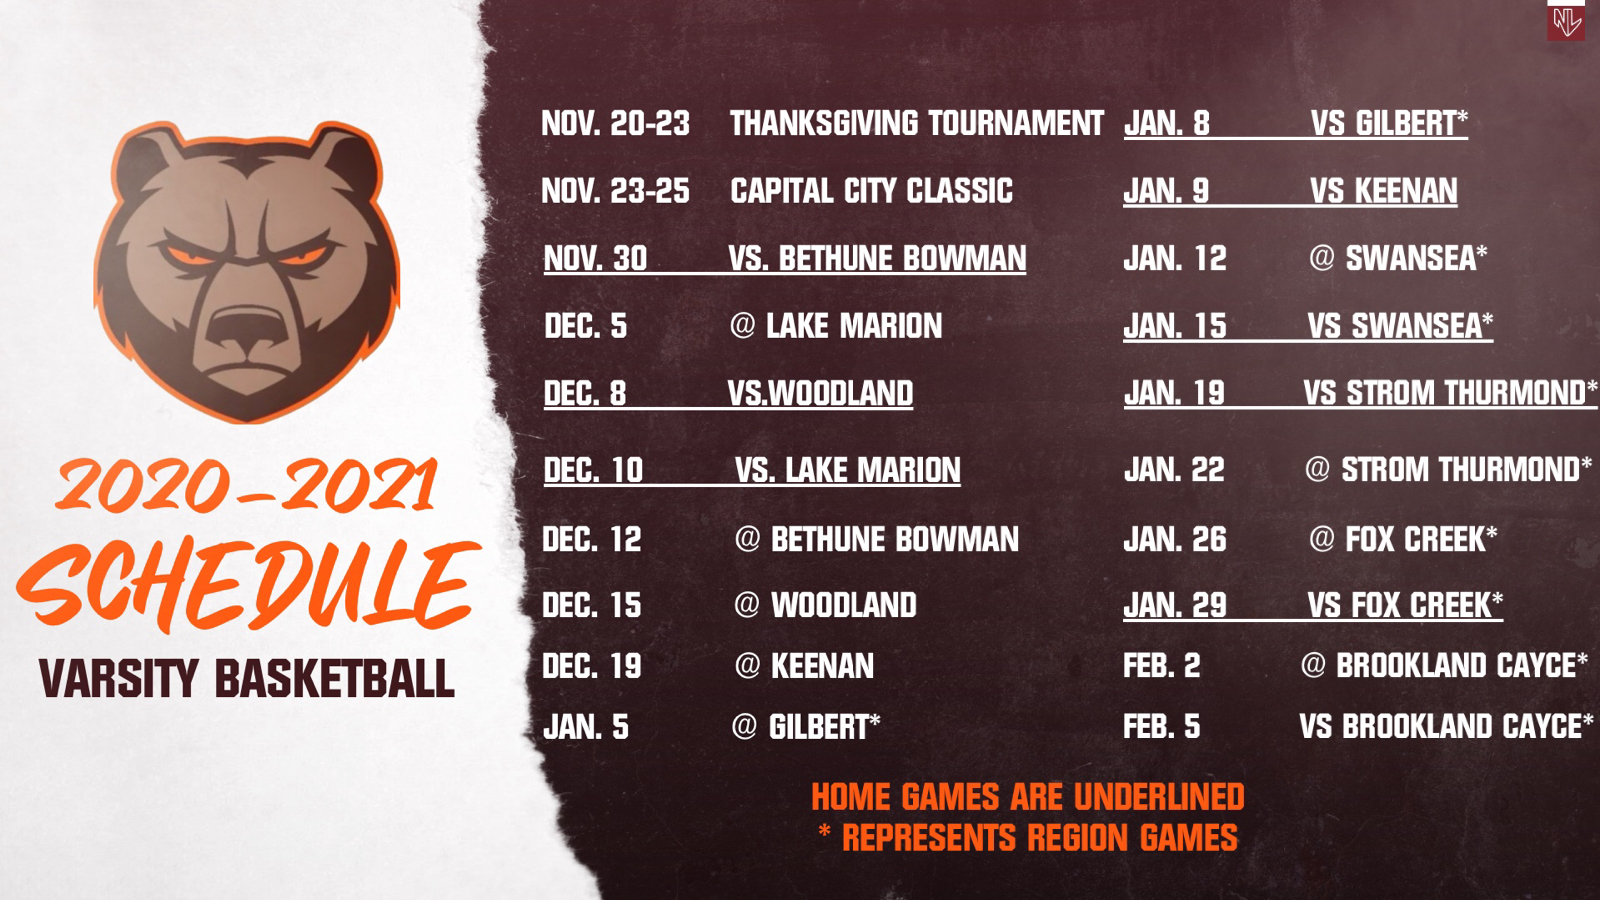 Varsity basketball schedule